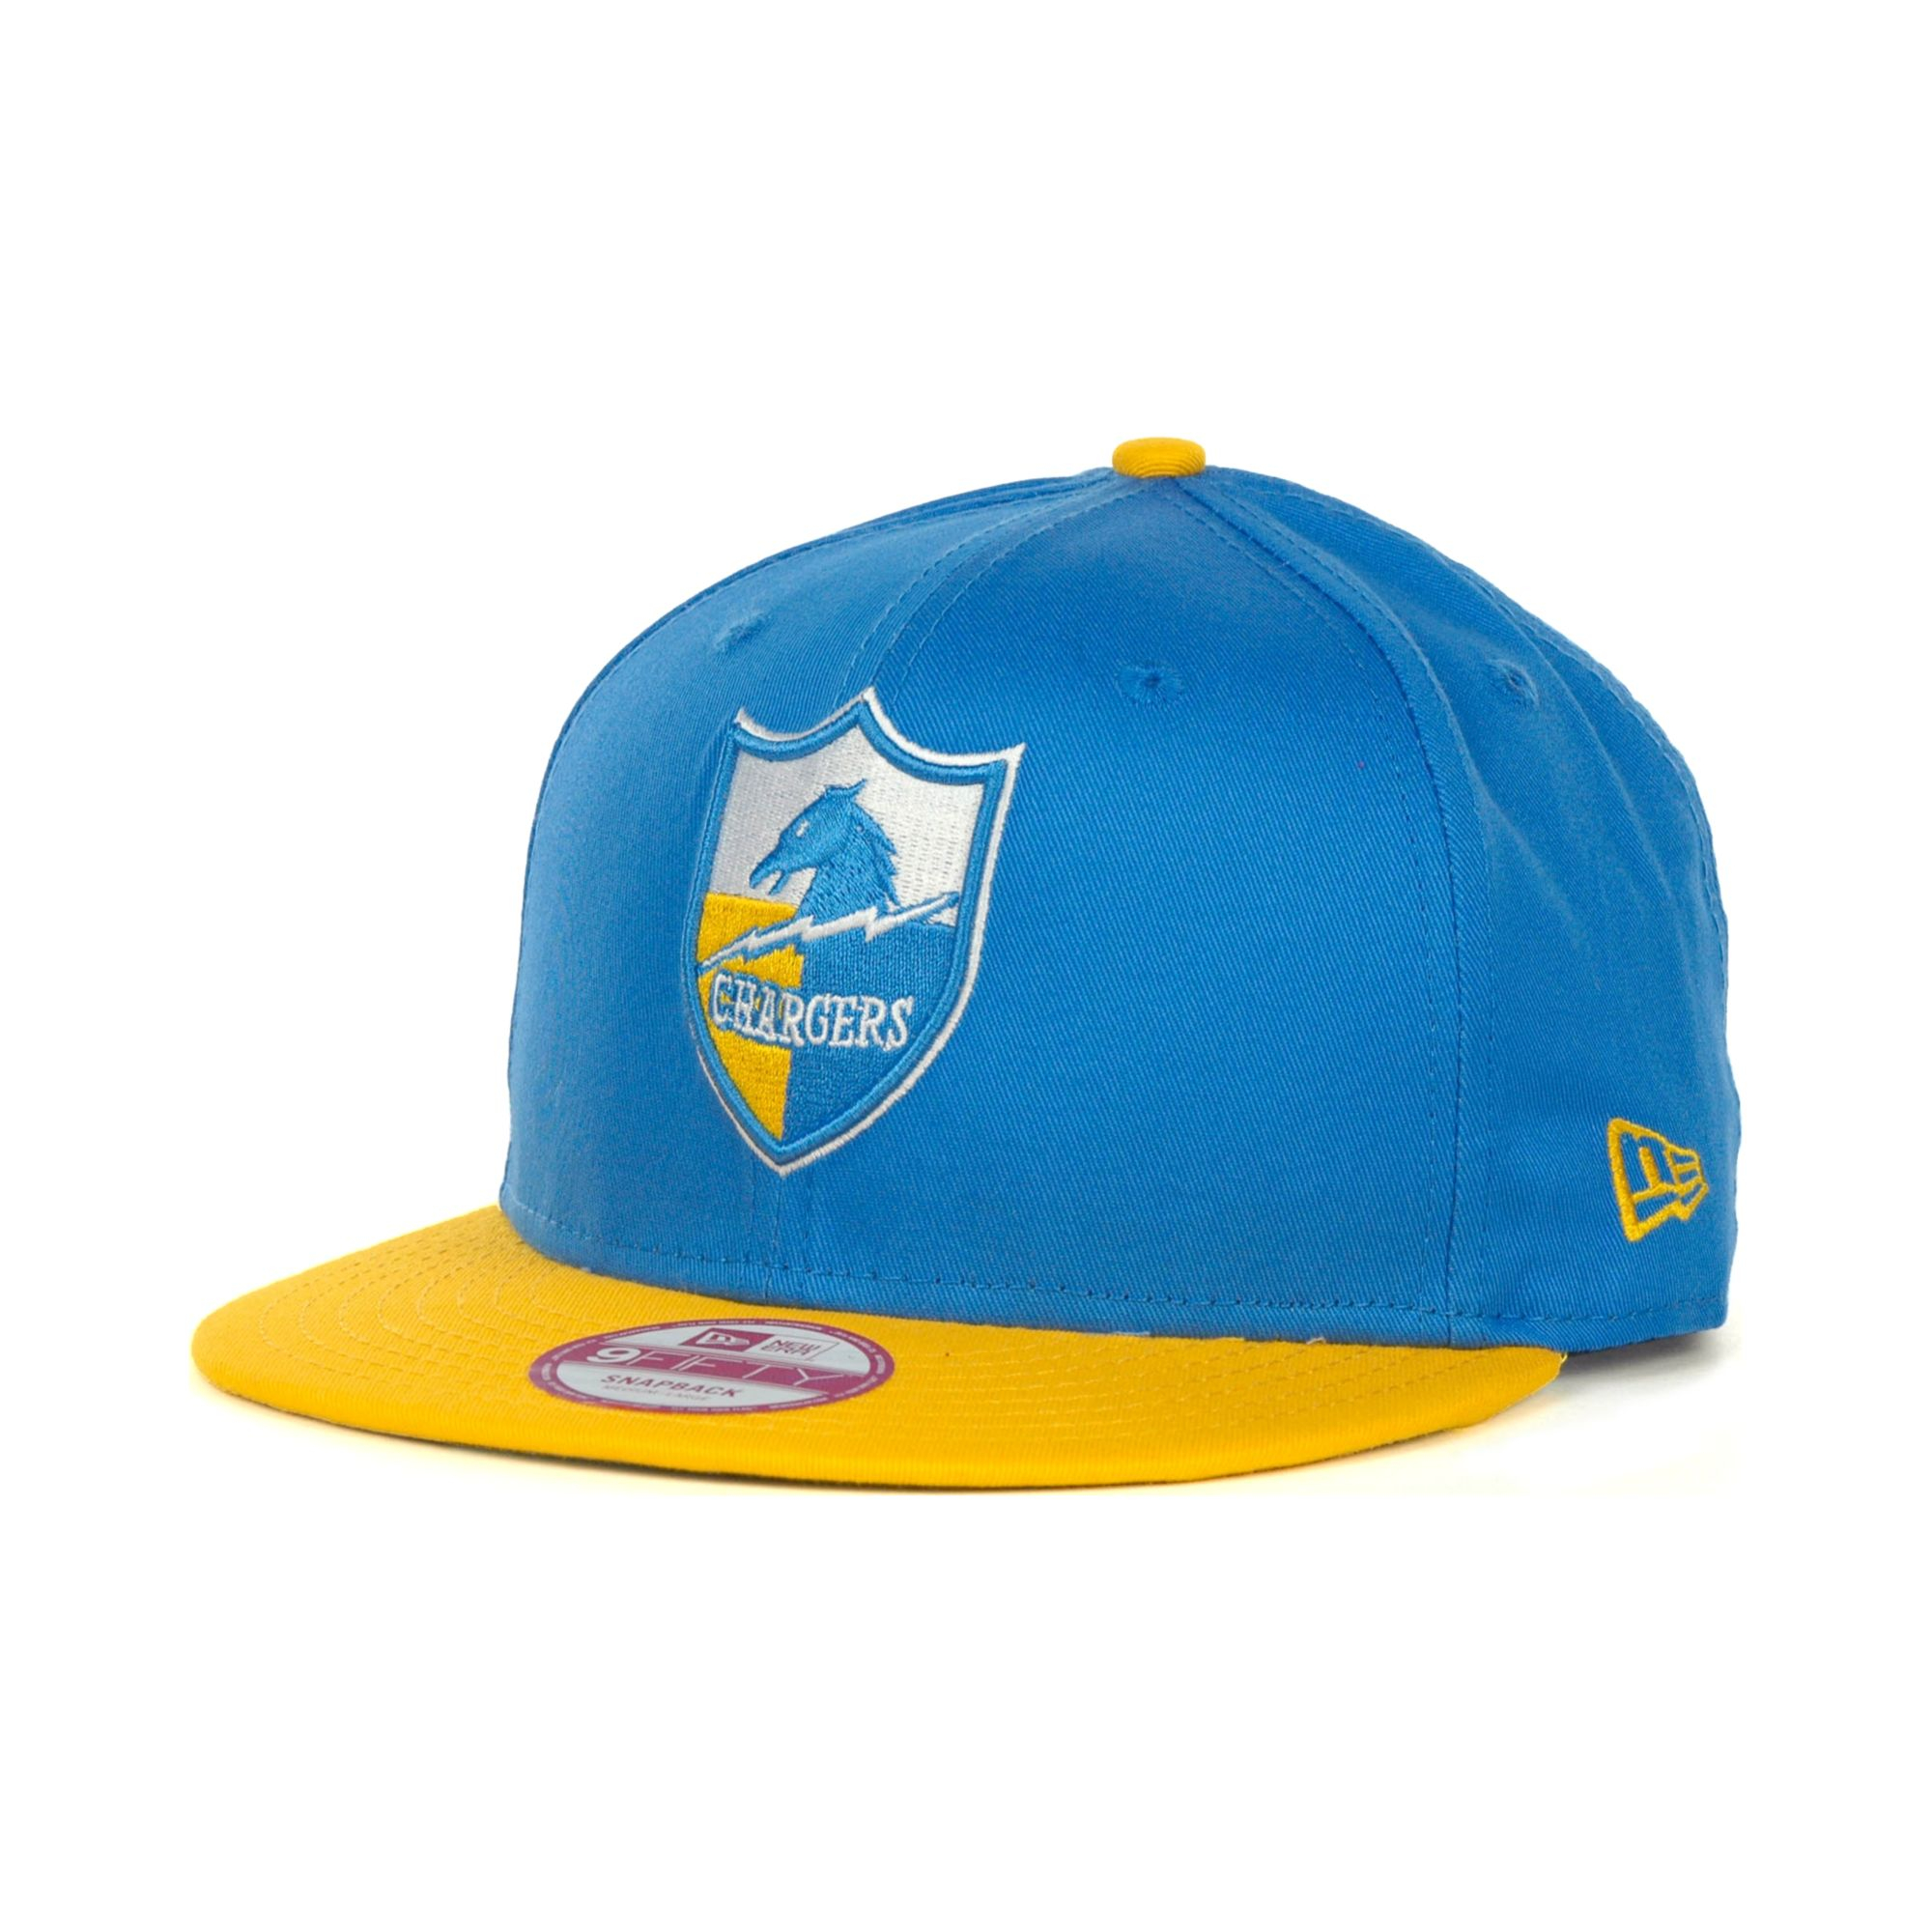 ... discount code for lyst ktz san diego chargers 9fifty snapback hat in  blue for men 62dd3 d3c1dceff